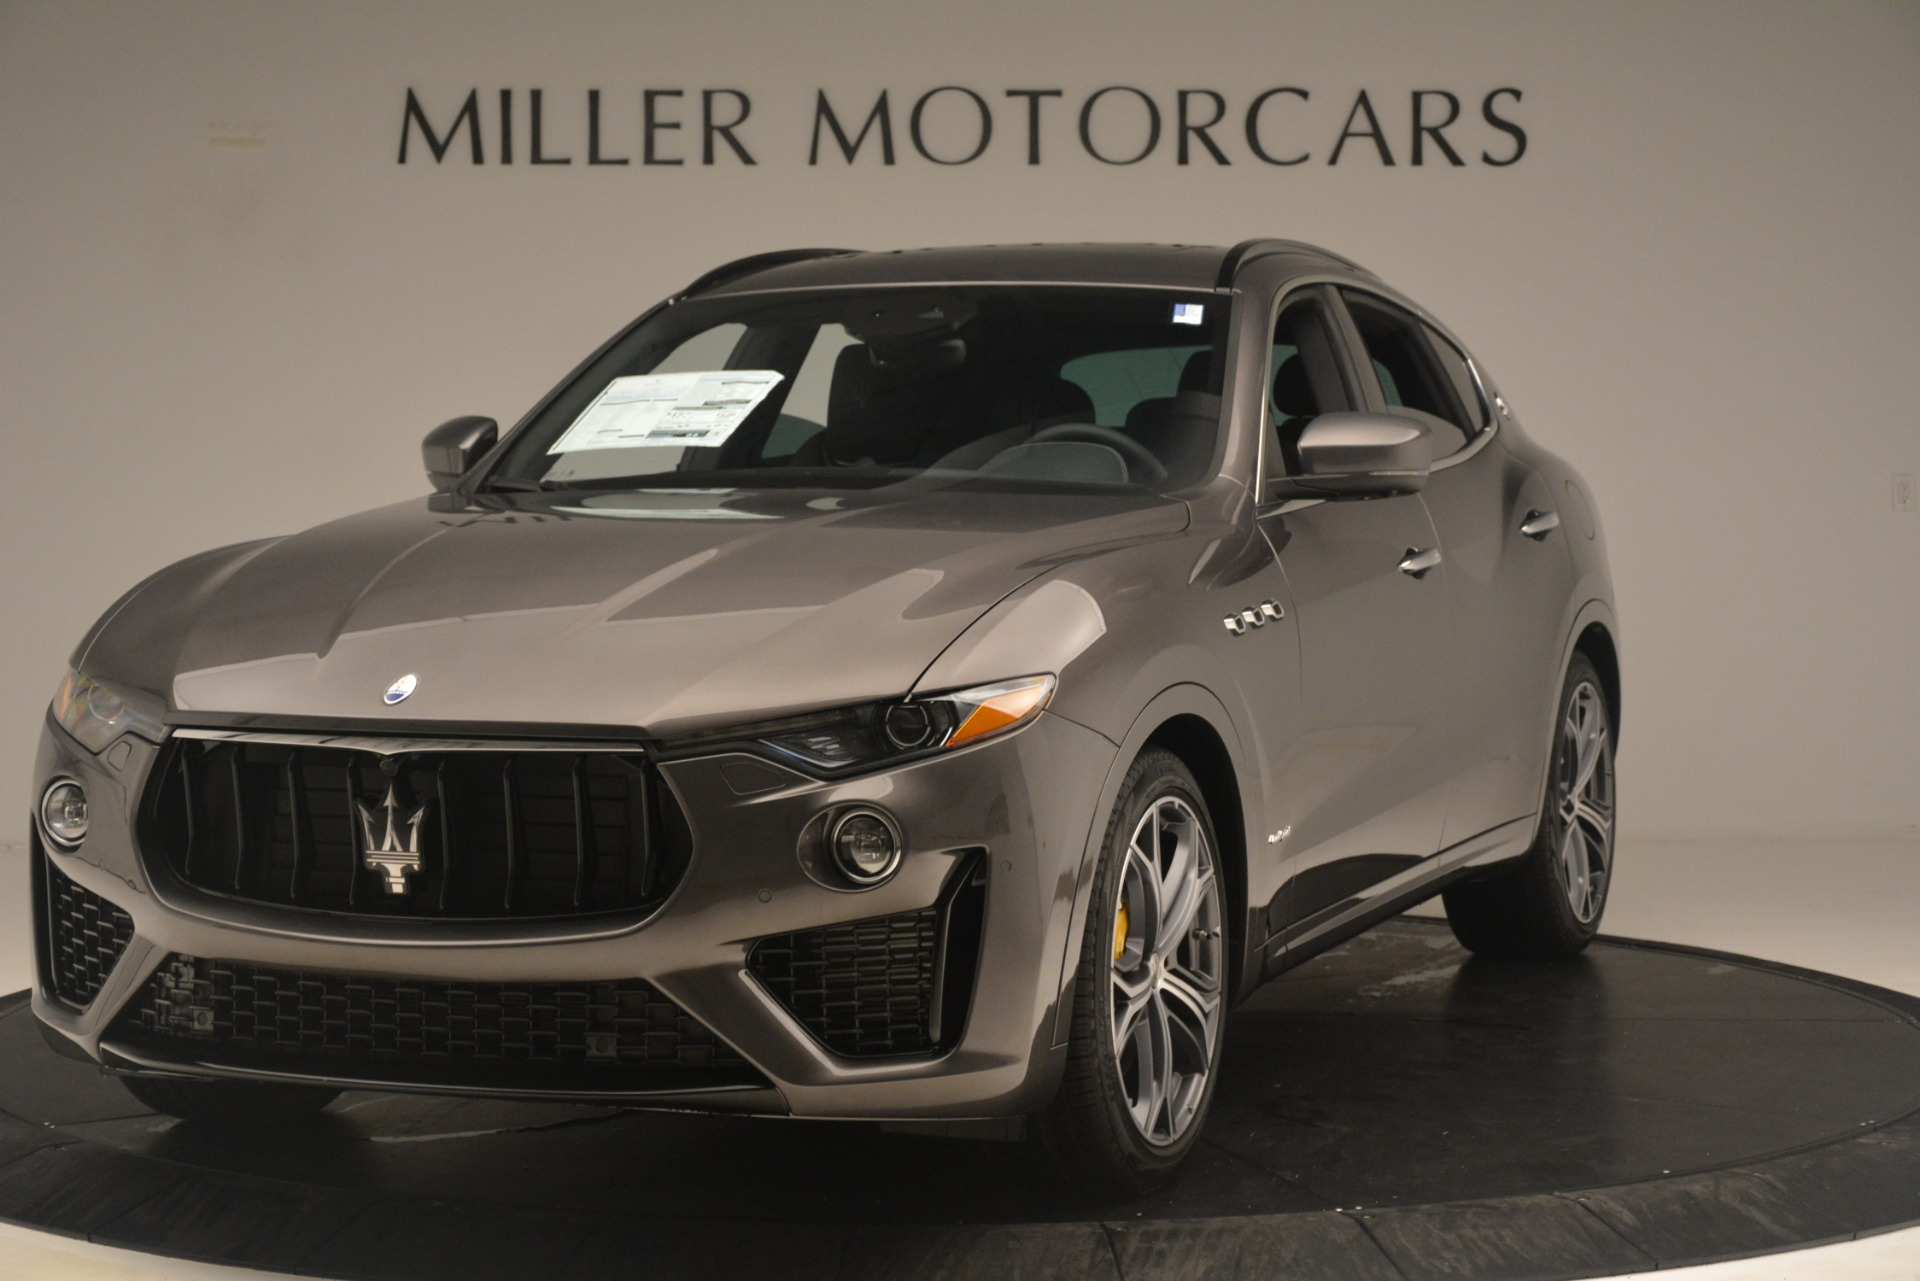 New 2019 Maserati Levante S Q4 GranSport for sale $104,840 at Rolls-Royce Motor Cars Greenwich in Greenwich CT 06830 1